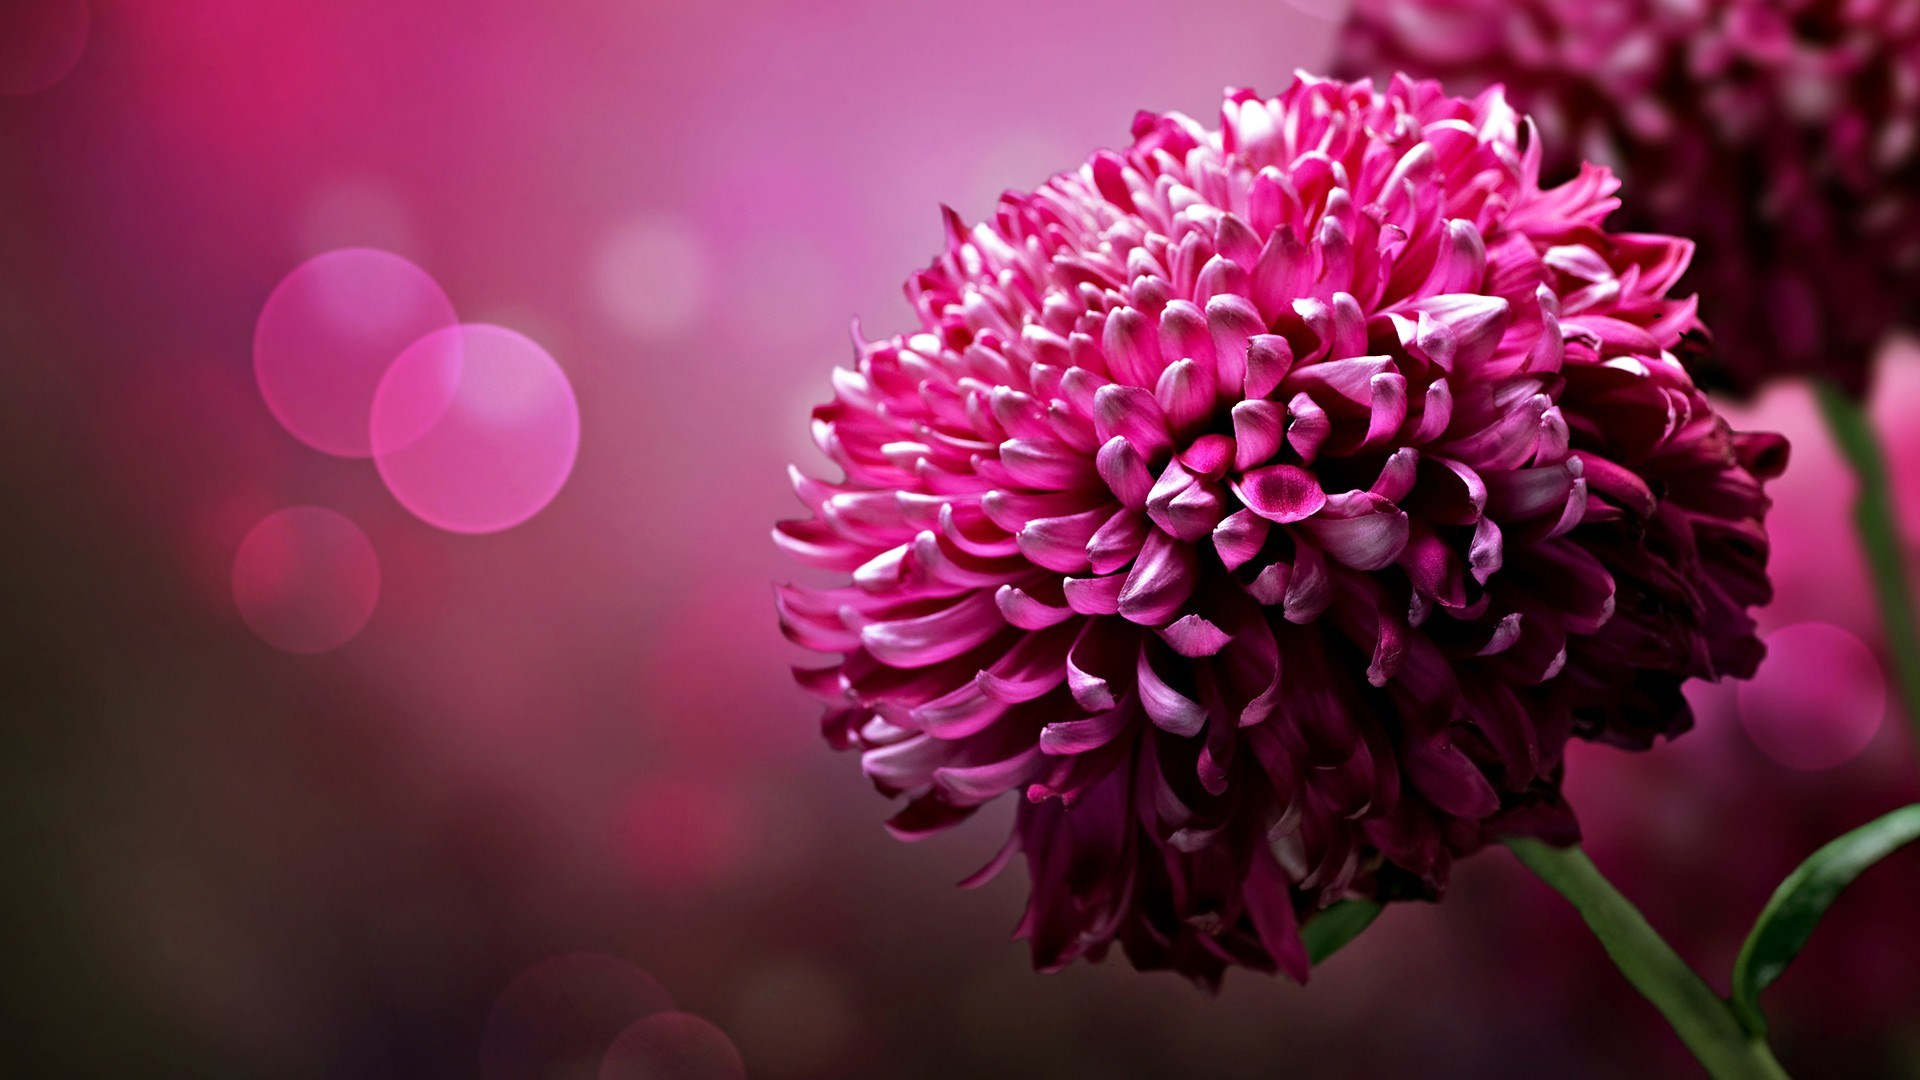 desktop-full-screen-floral-hd-1920x1080-wallpaper-wp3804484